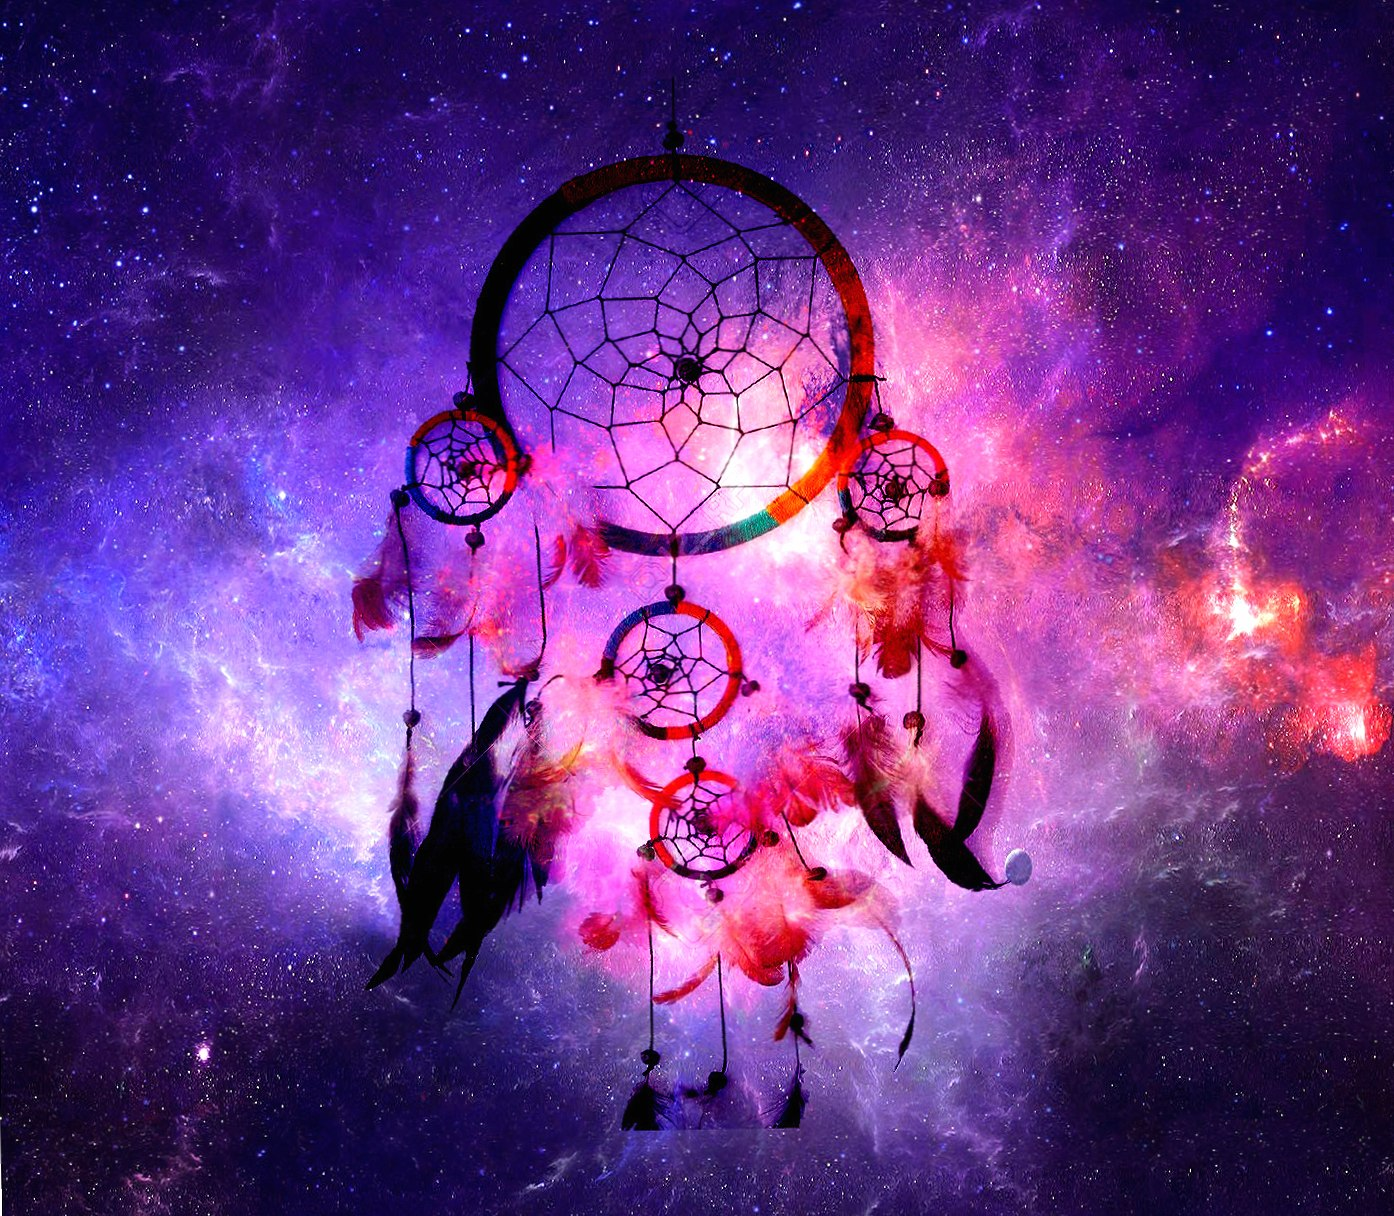 Dreamcatcher space wallpaper hd download dreamcatcher space wallpapers hd quality voltagebd